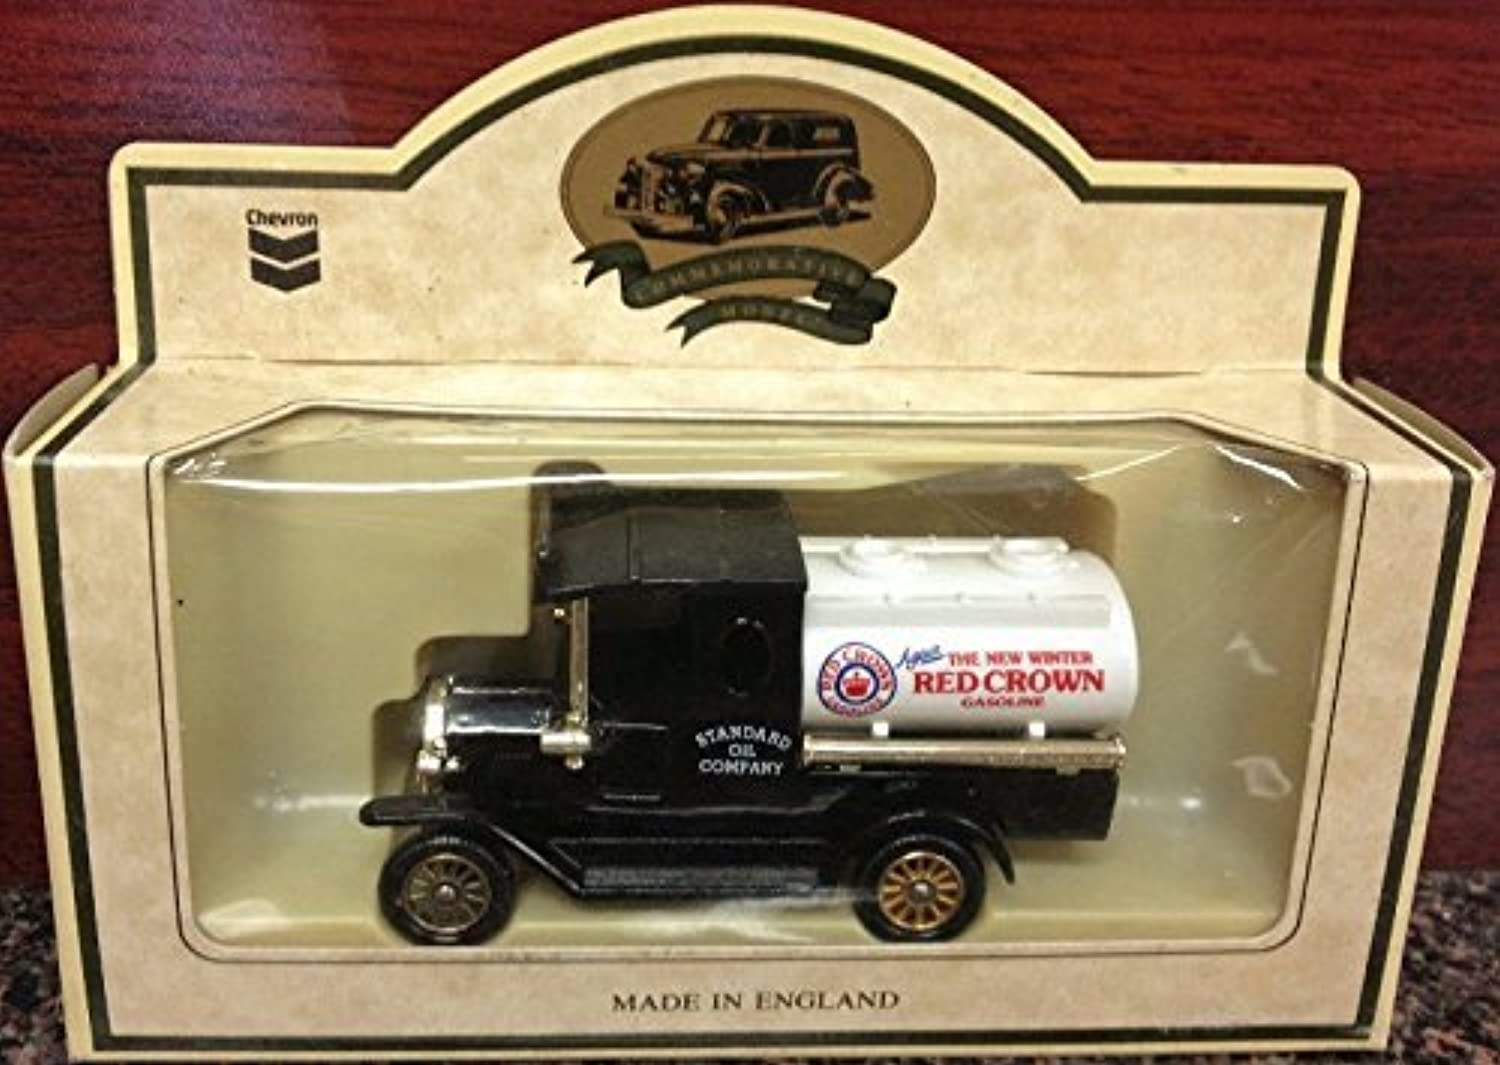 Lledo Models of days Gone standard Oil Company rot crown Gasoline by Lledo